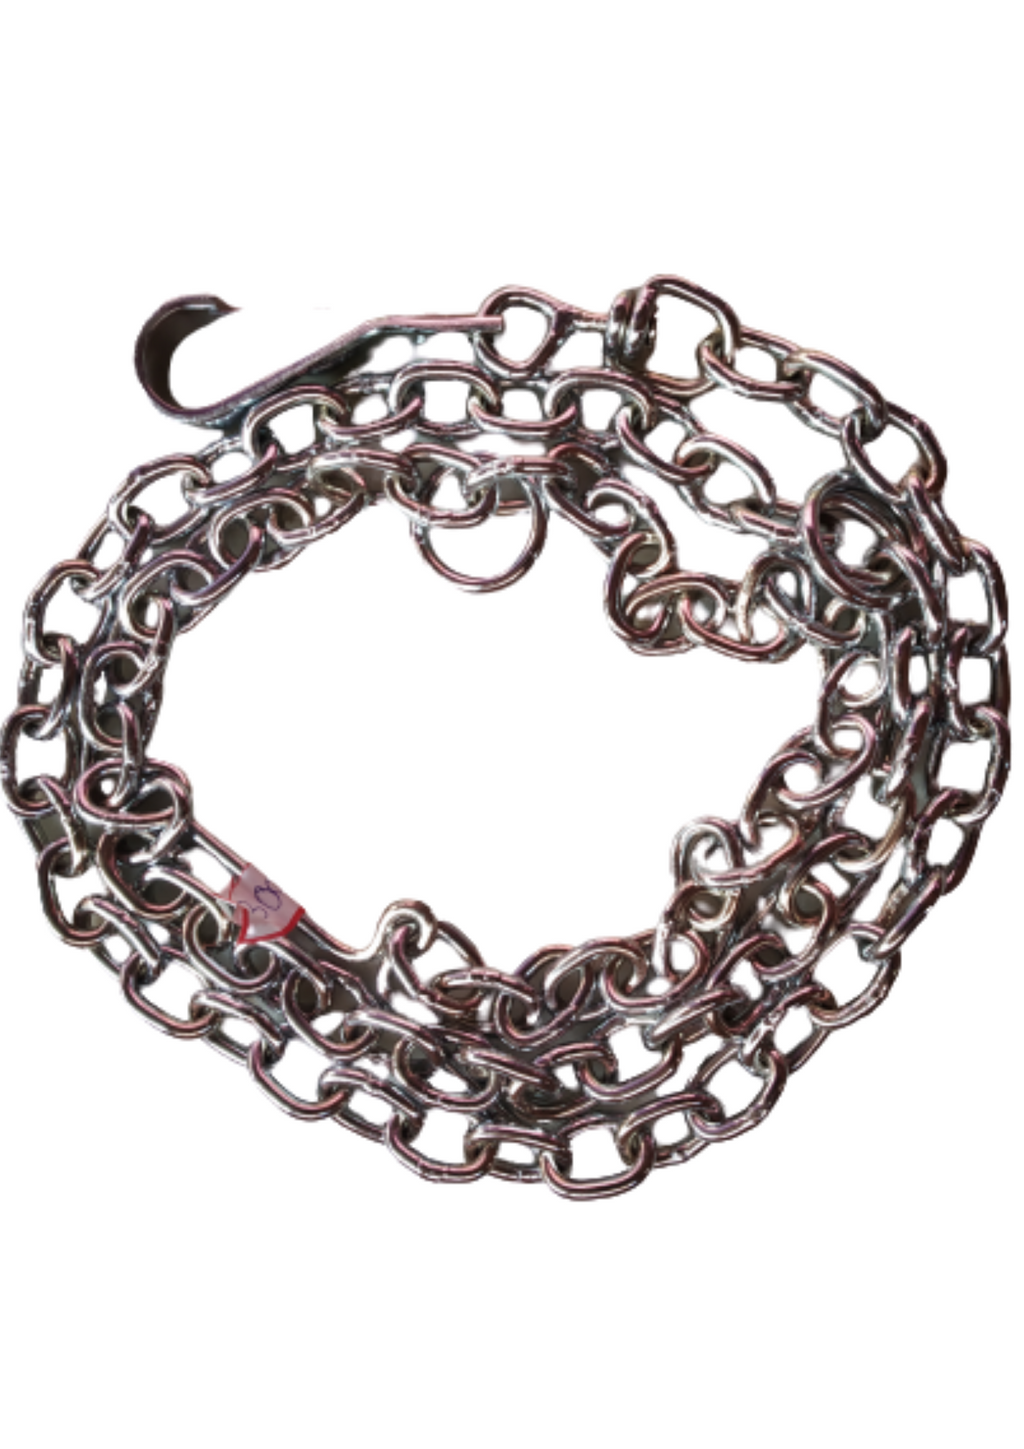 Super Heavy Weight Dog Leash Chain | Iron